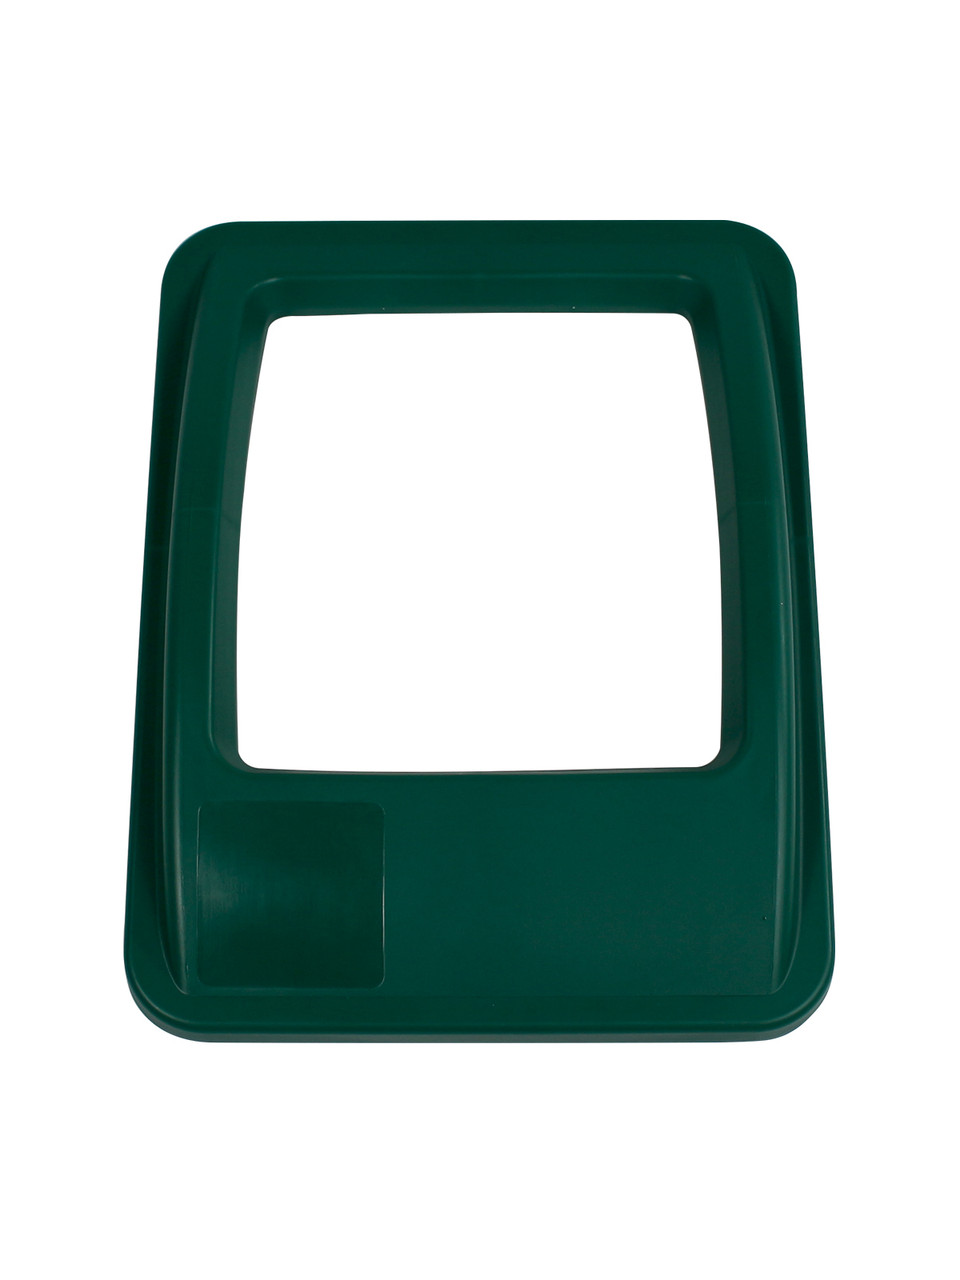 RECTANGLE OPENING LID GREEN